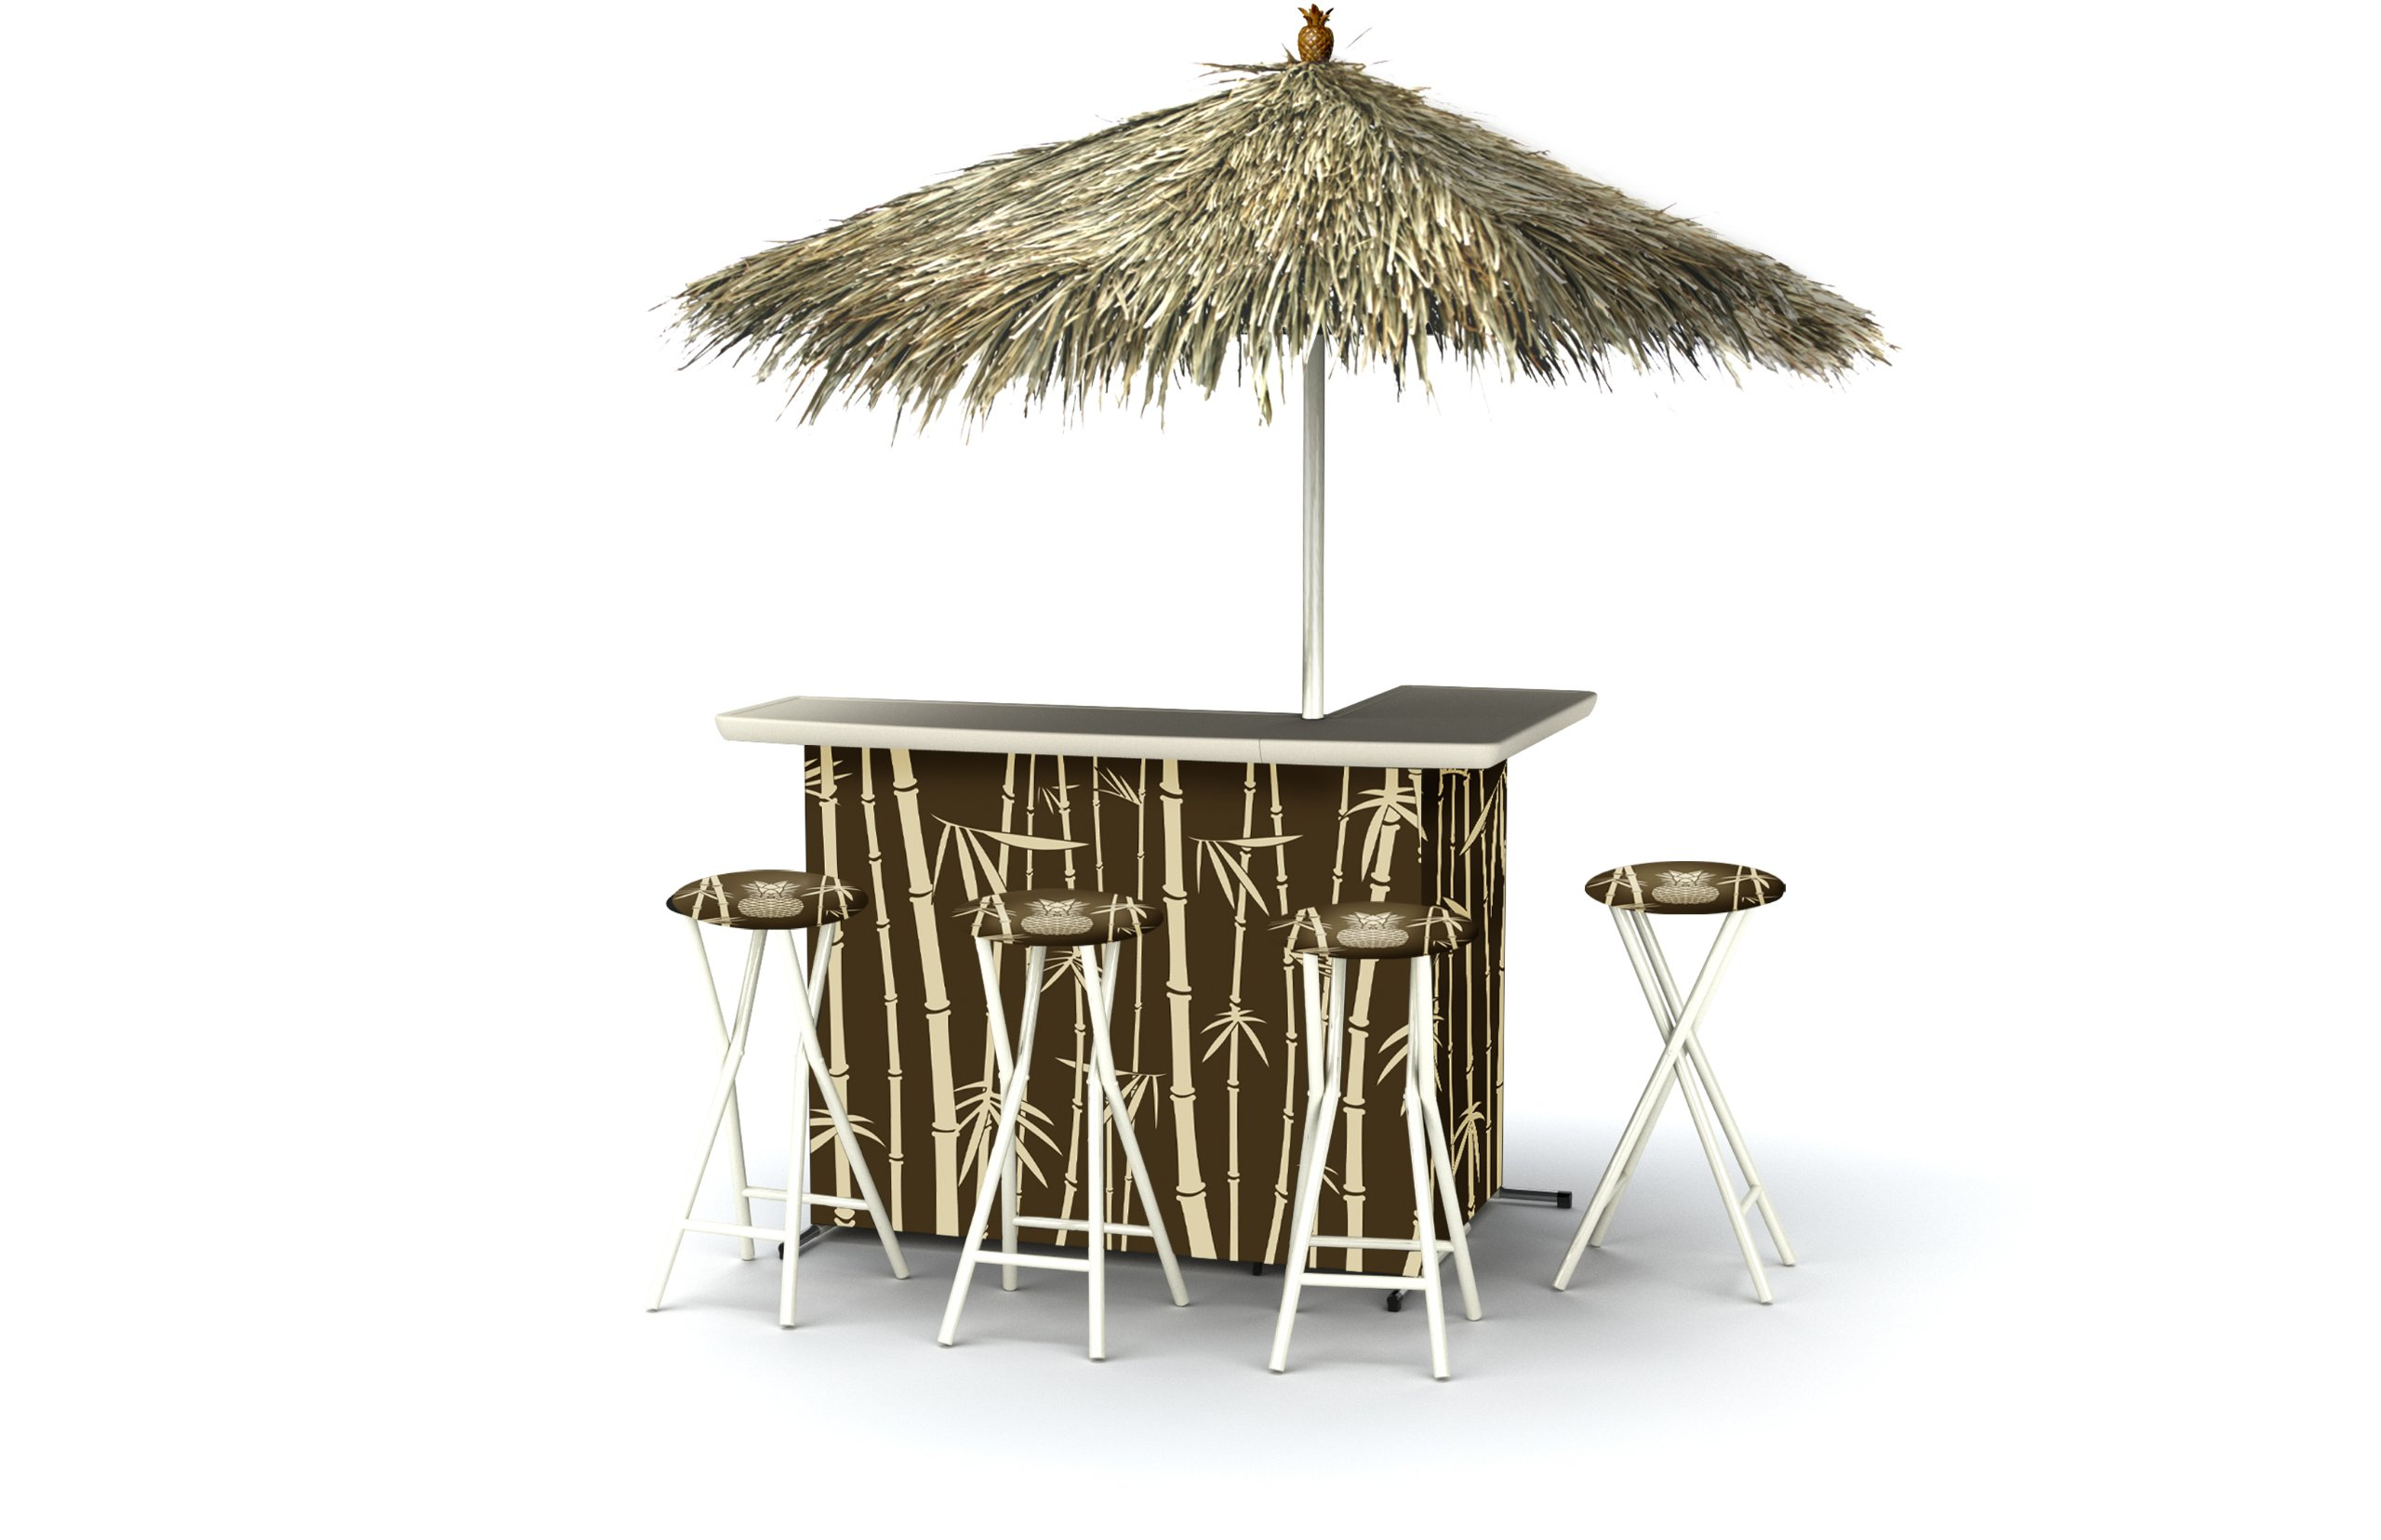 Best of Times Patio Bar and Tailgating Center Deluxe Package- Tiki